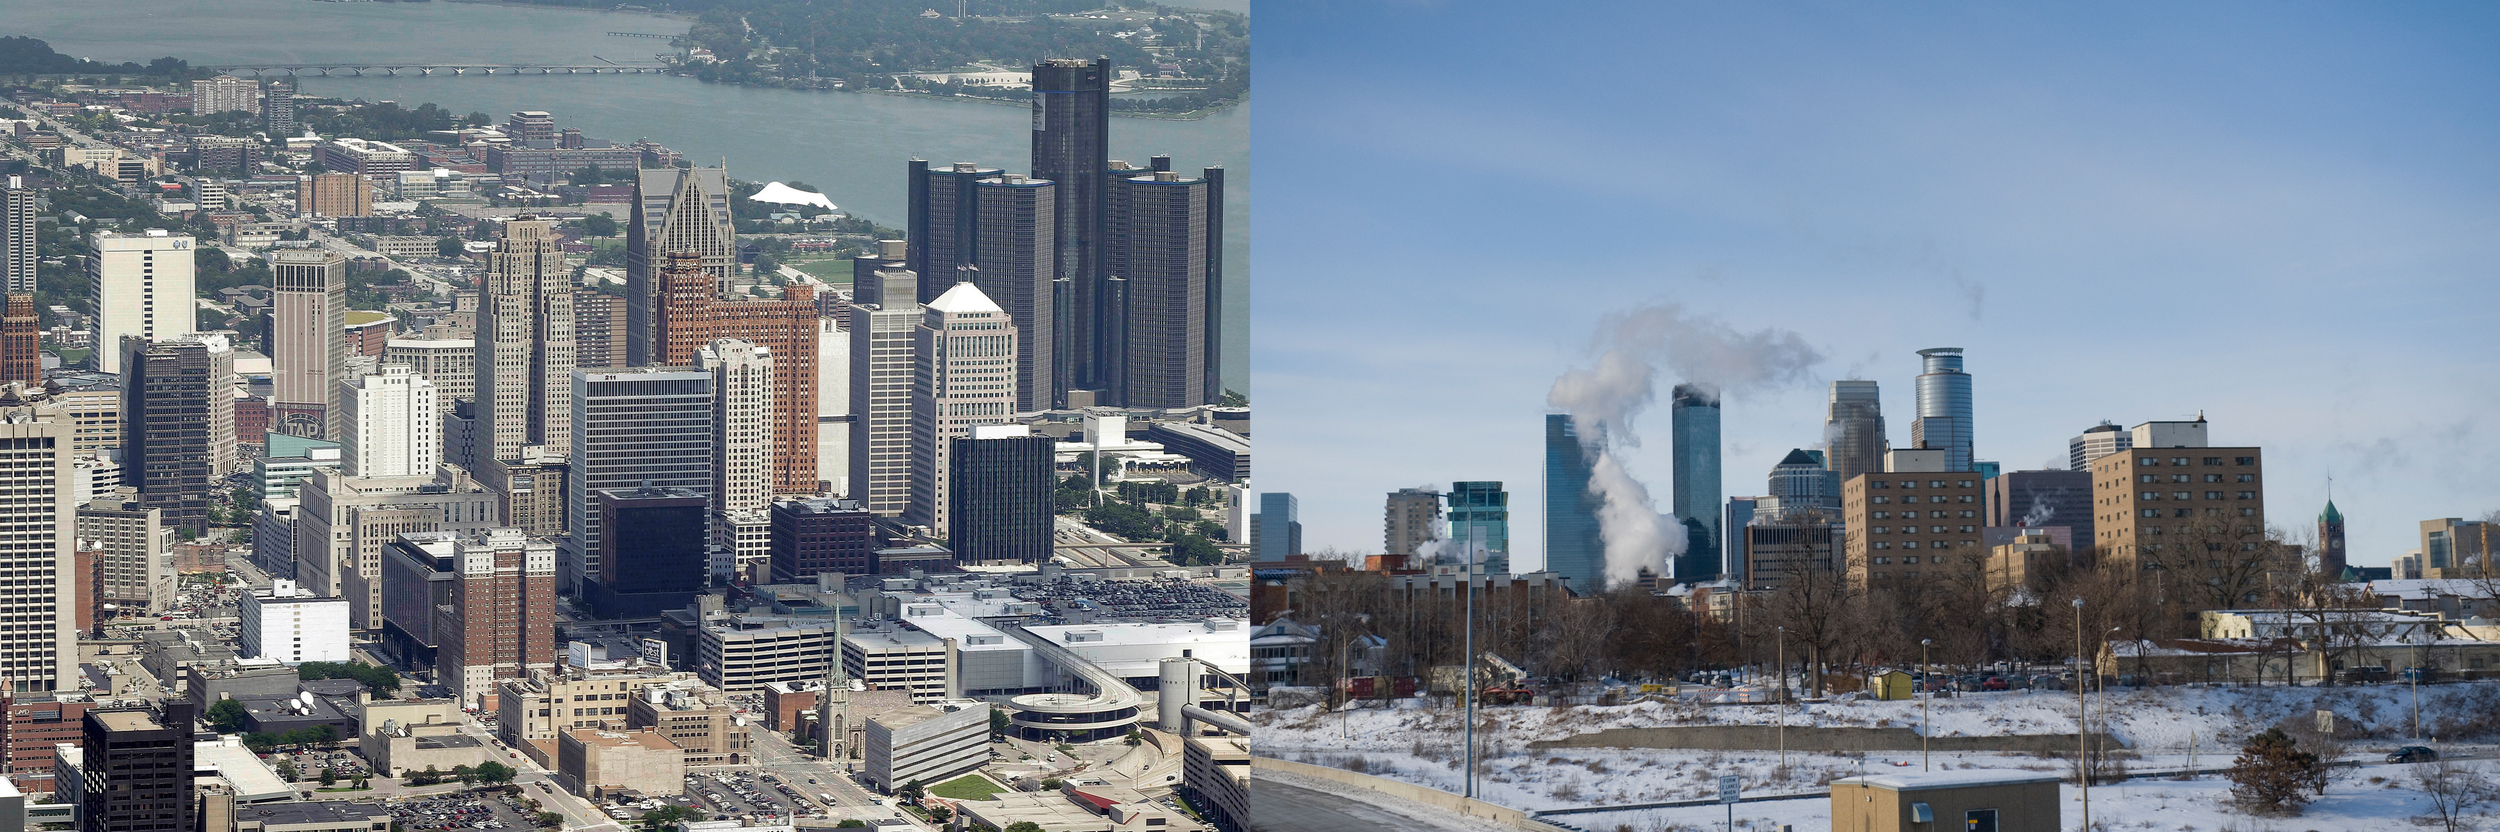 The skylines of Detroit and Minneapolis